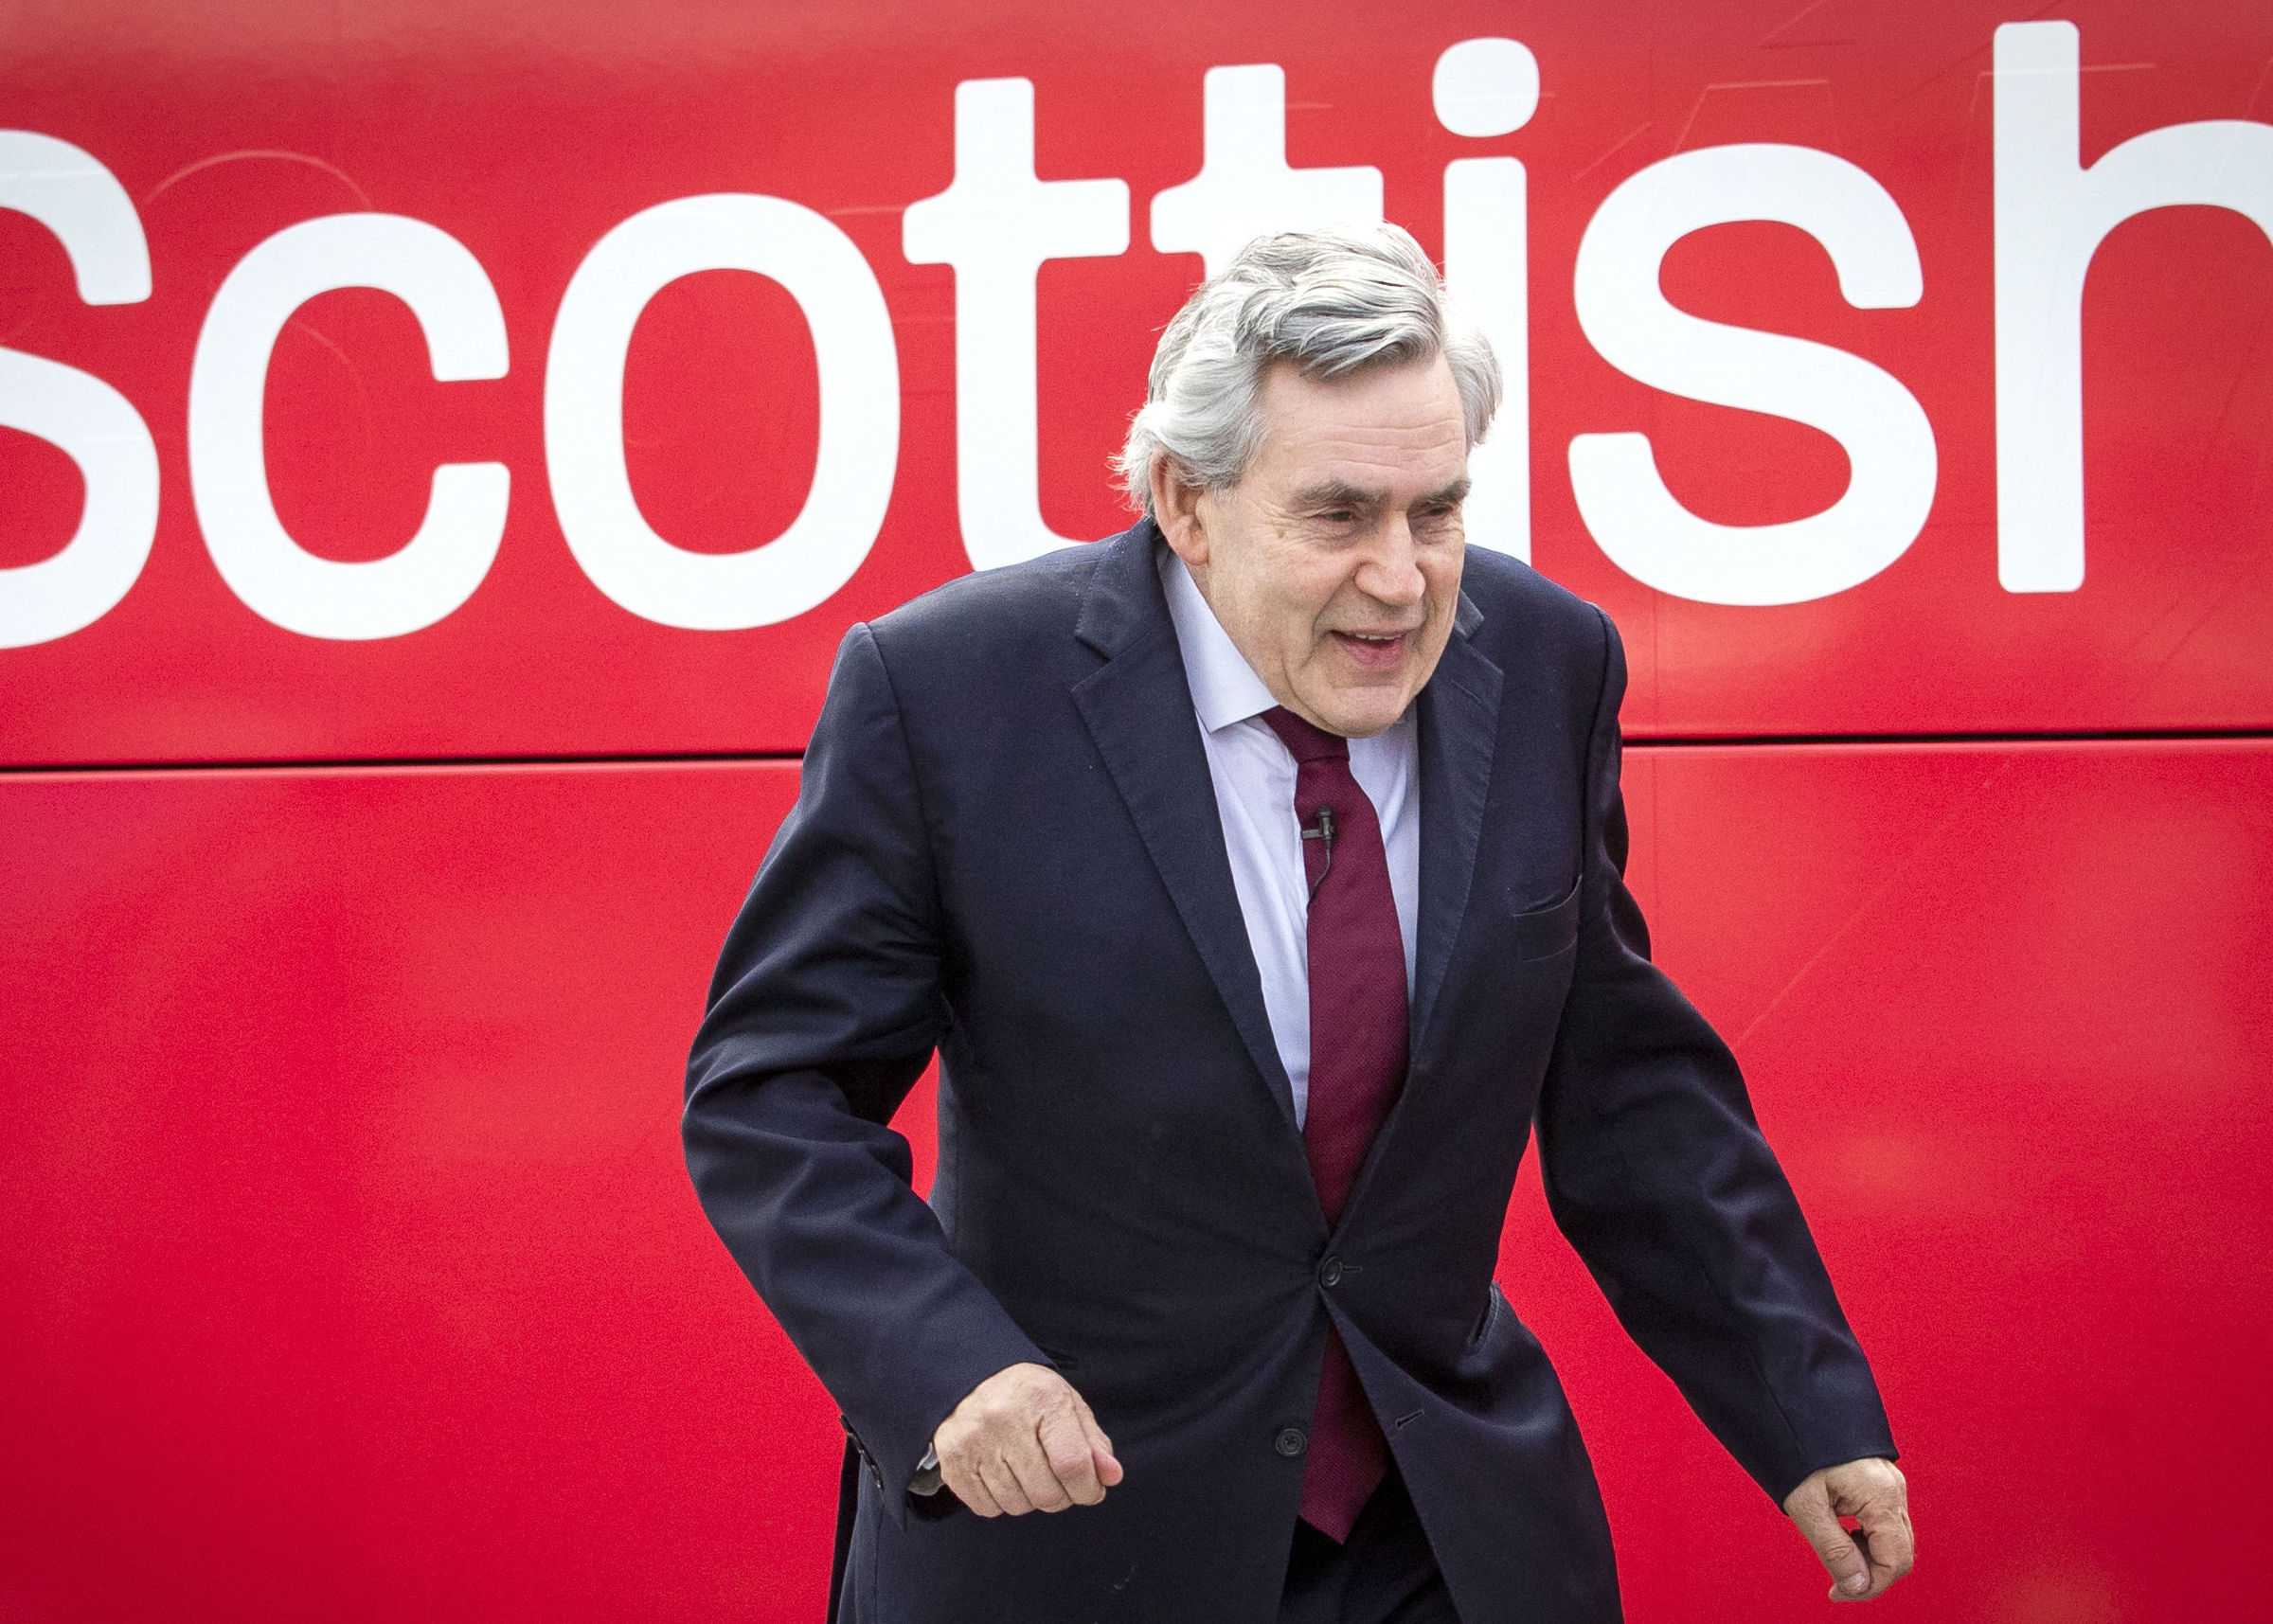 Kevin McKenna: When will BBC start calling out mince from Unionist politicians?